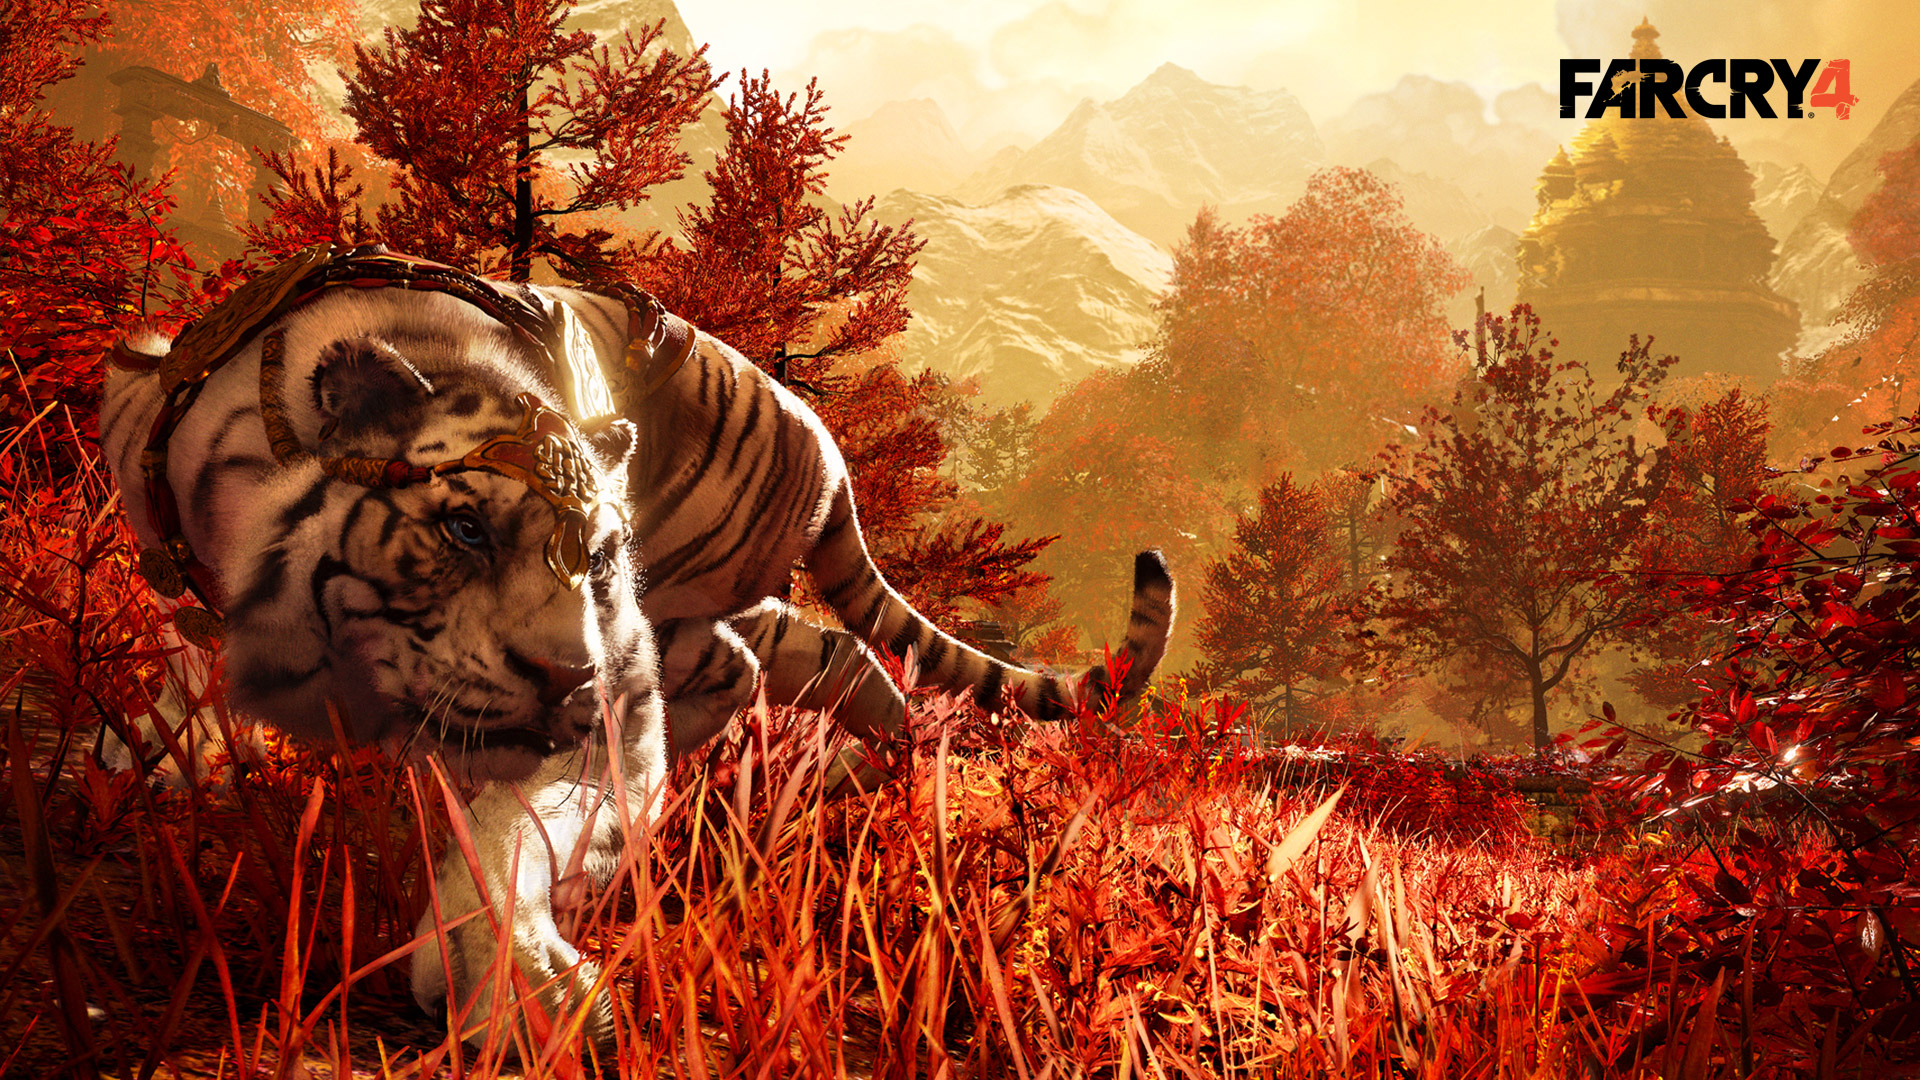 Far Cry 4 Wallpaper in 1920x1080